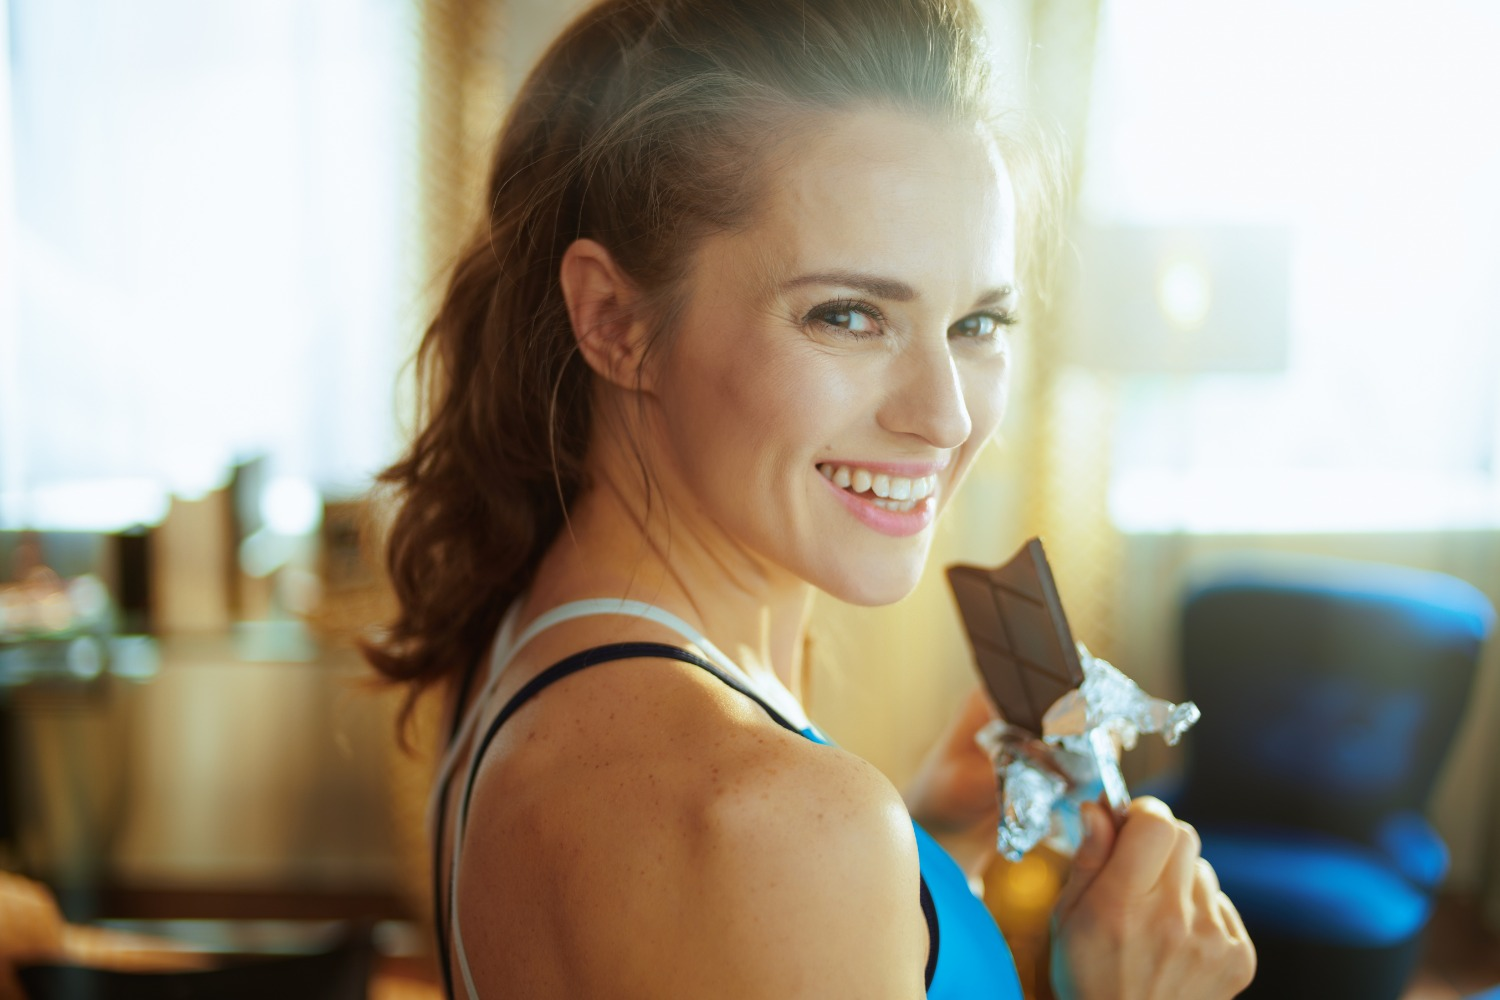 Chocolate helps with recovery after workouts   Shutterstock